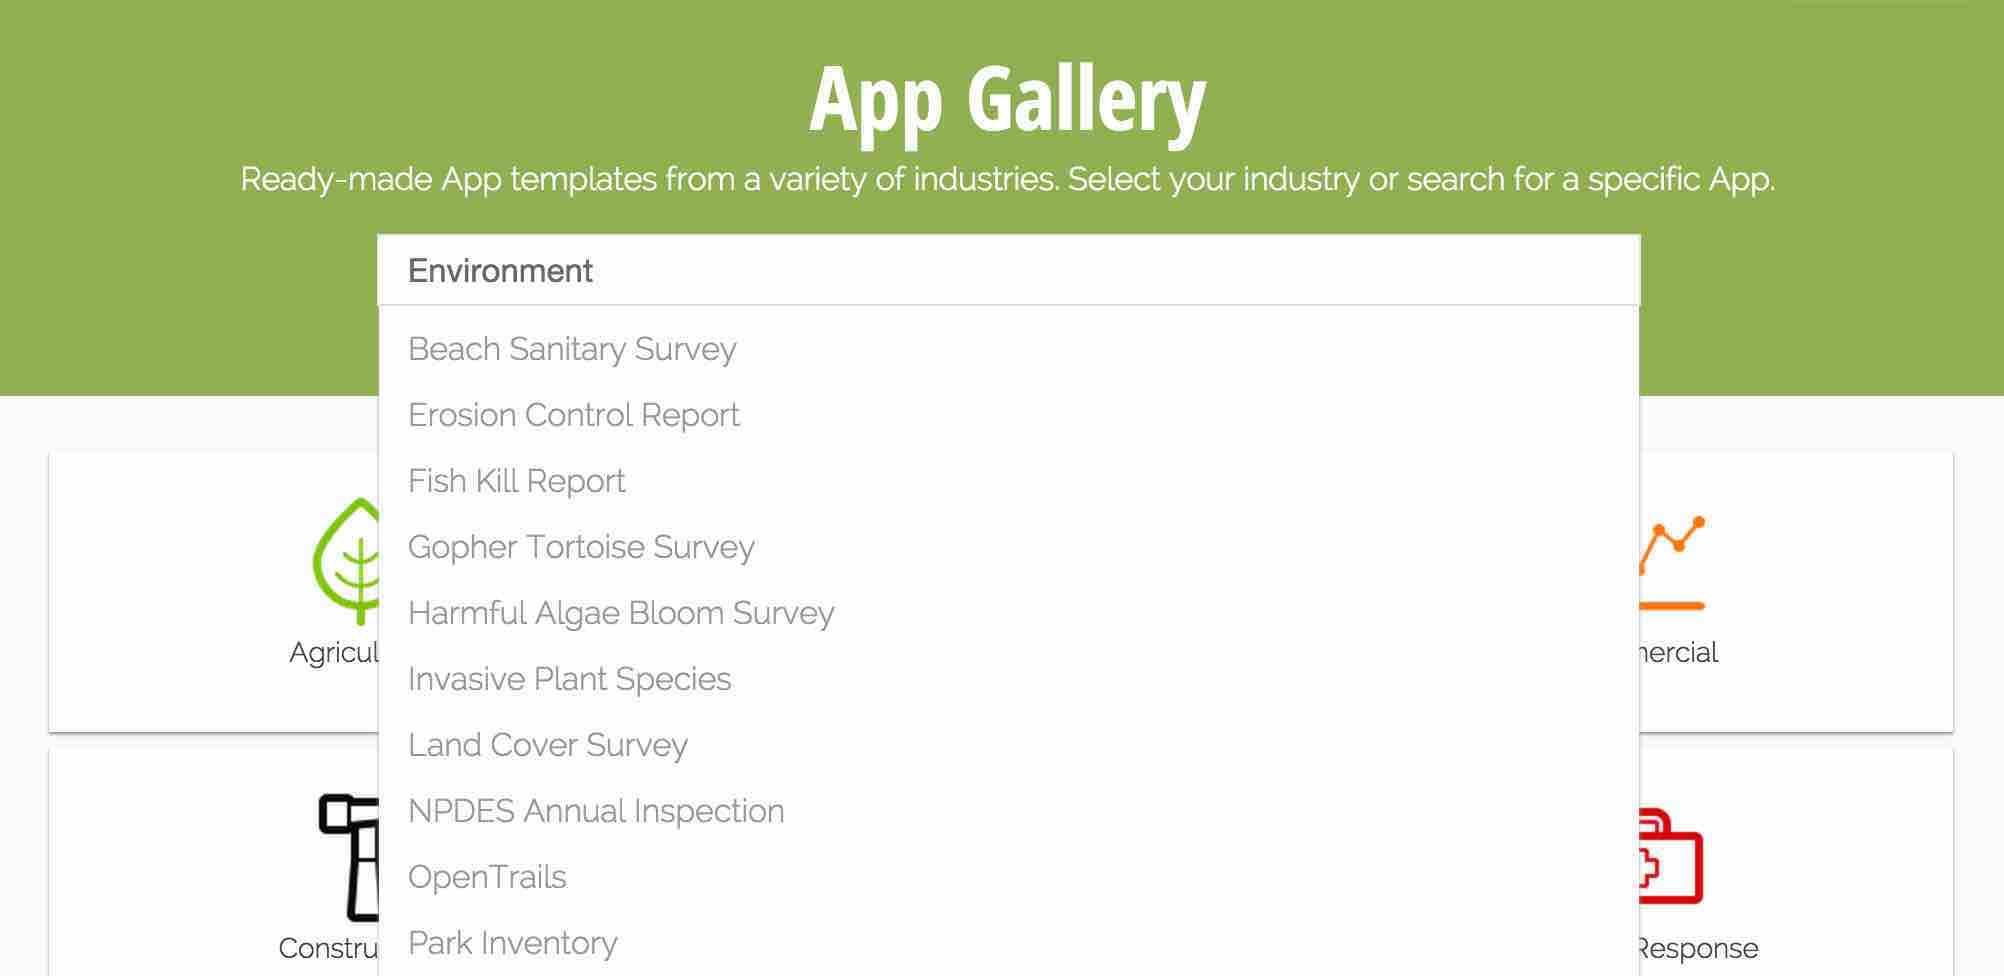 Expanding the App Gallery